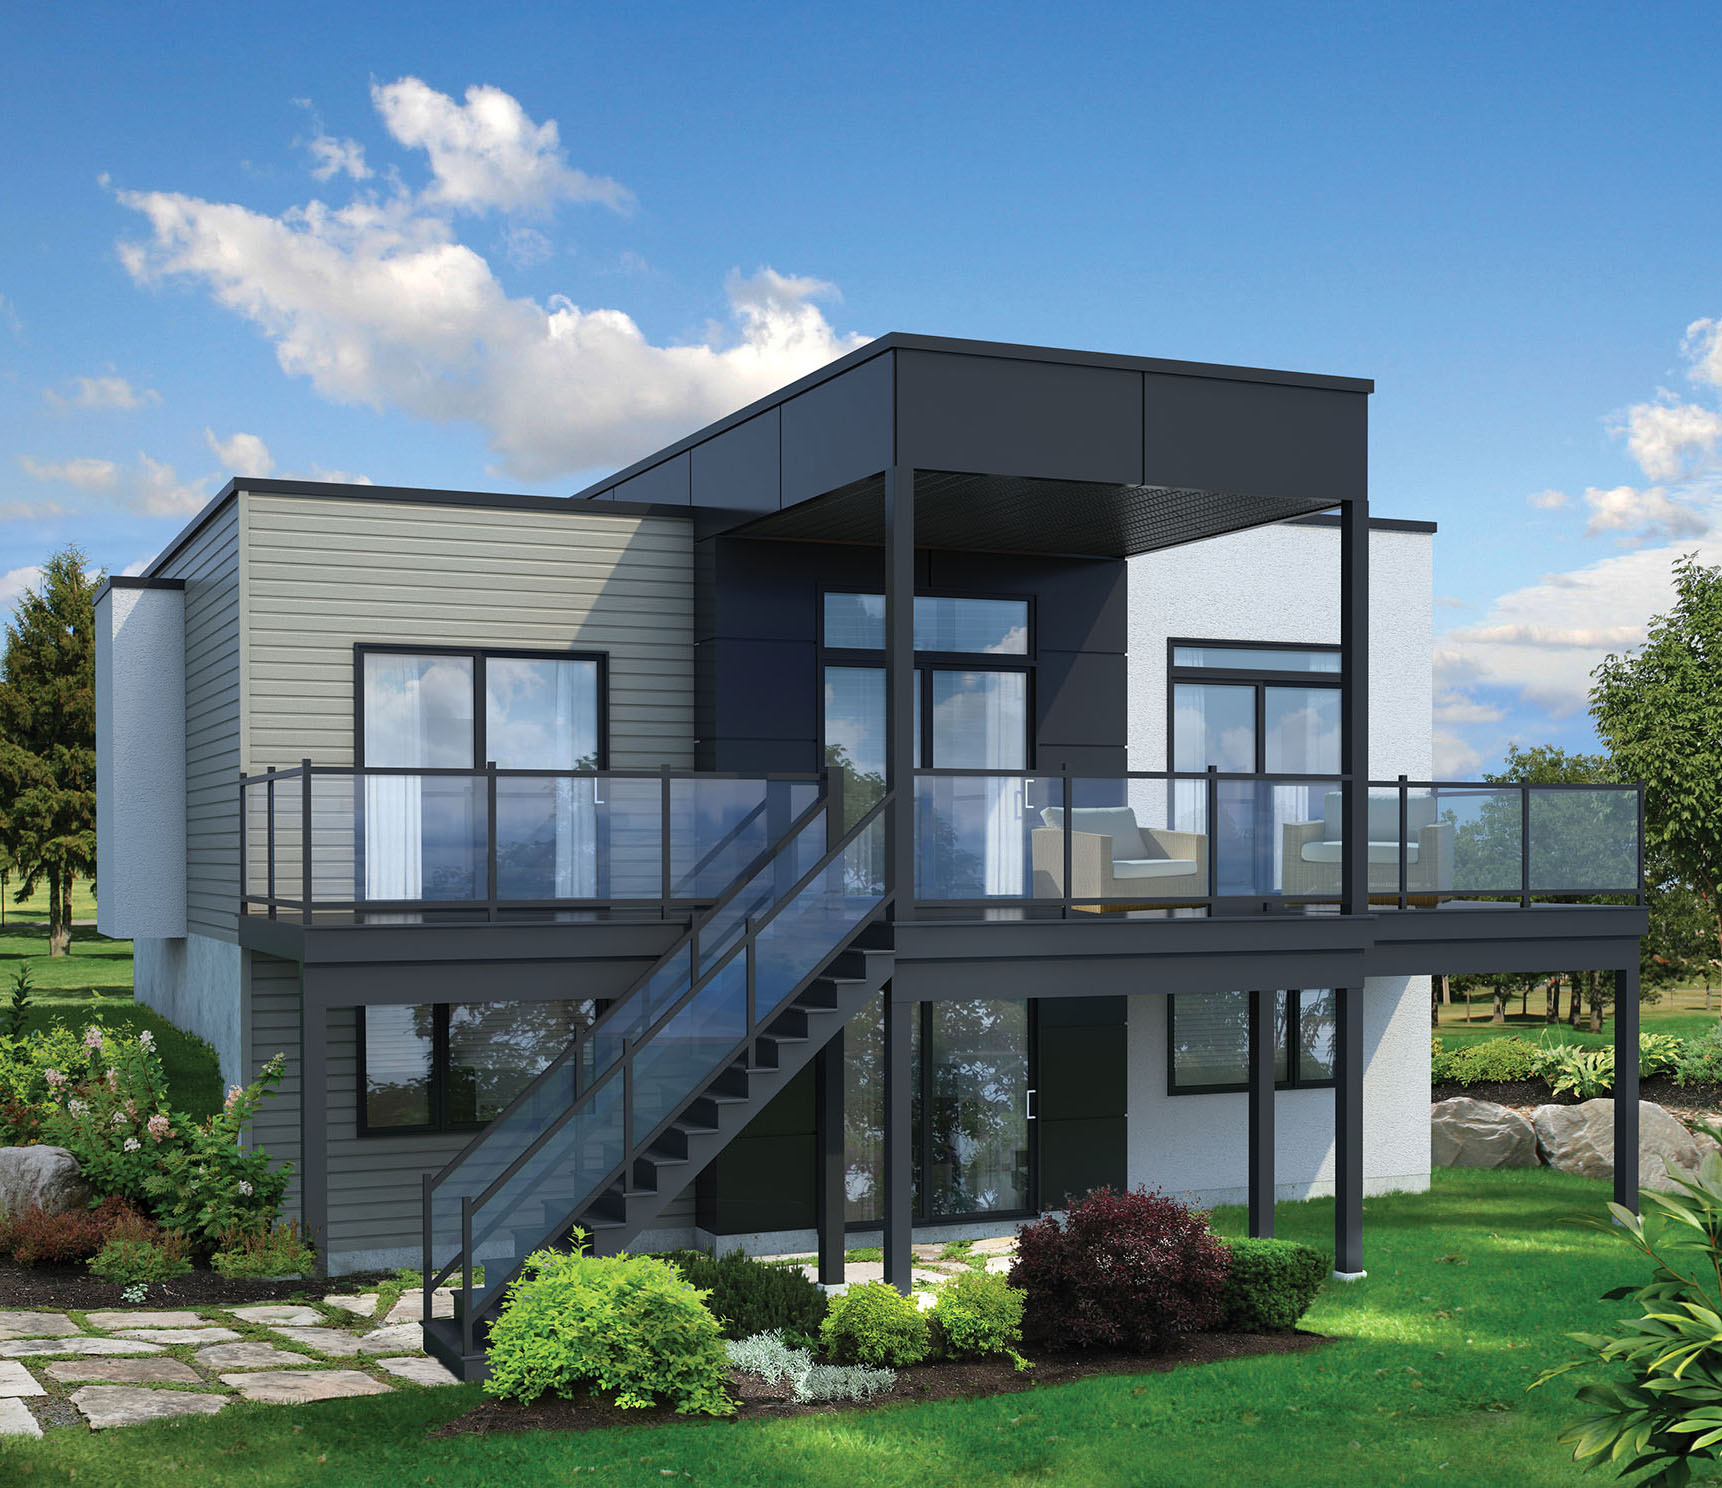 2 bed modern house plan for sloping lot 80780pm Building on a lot